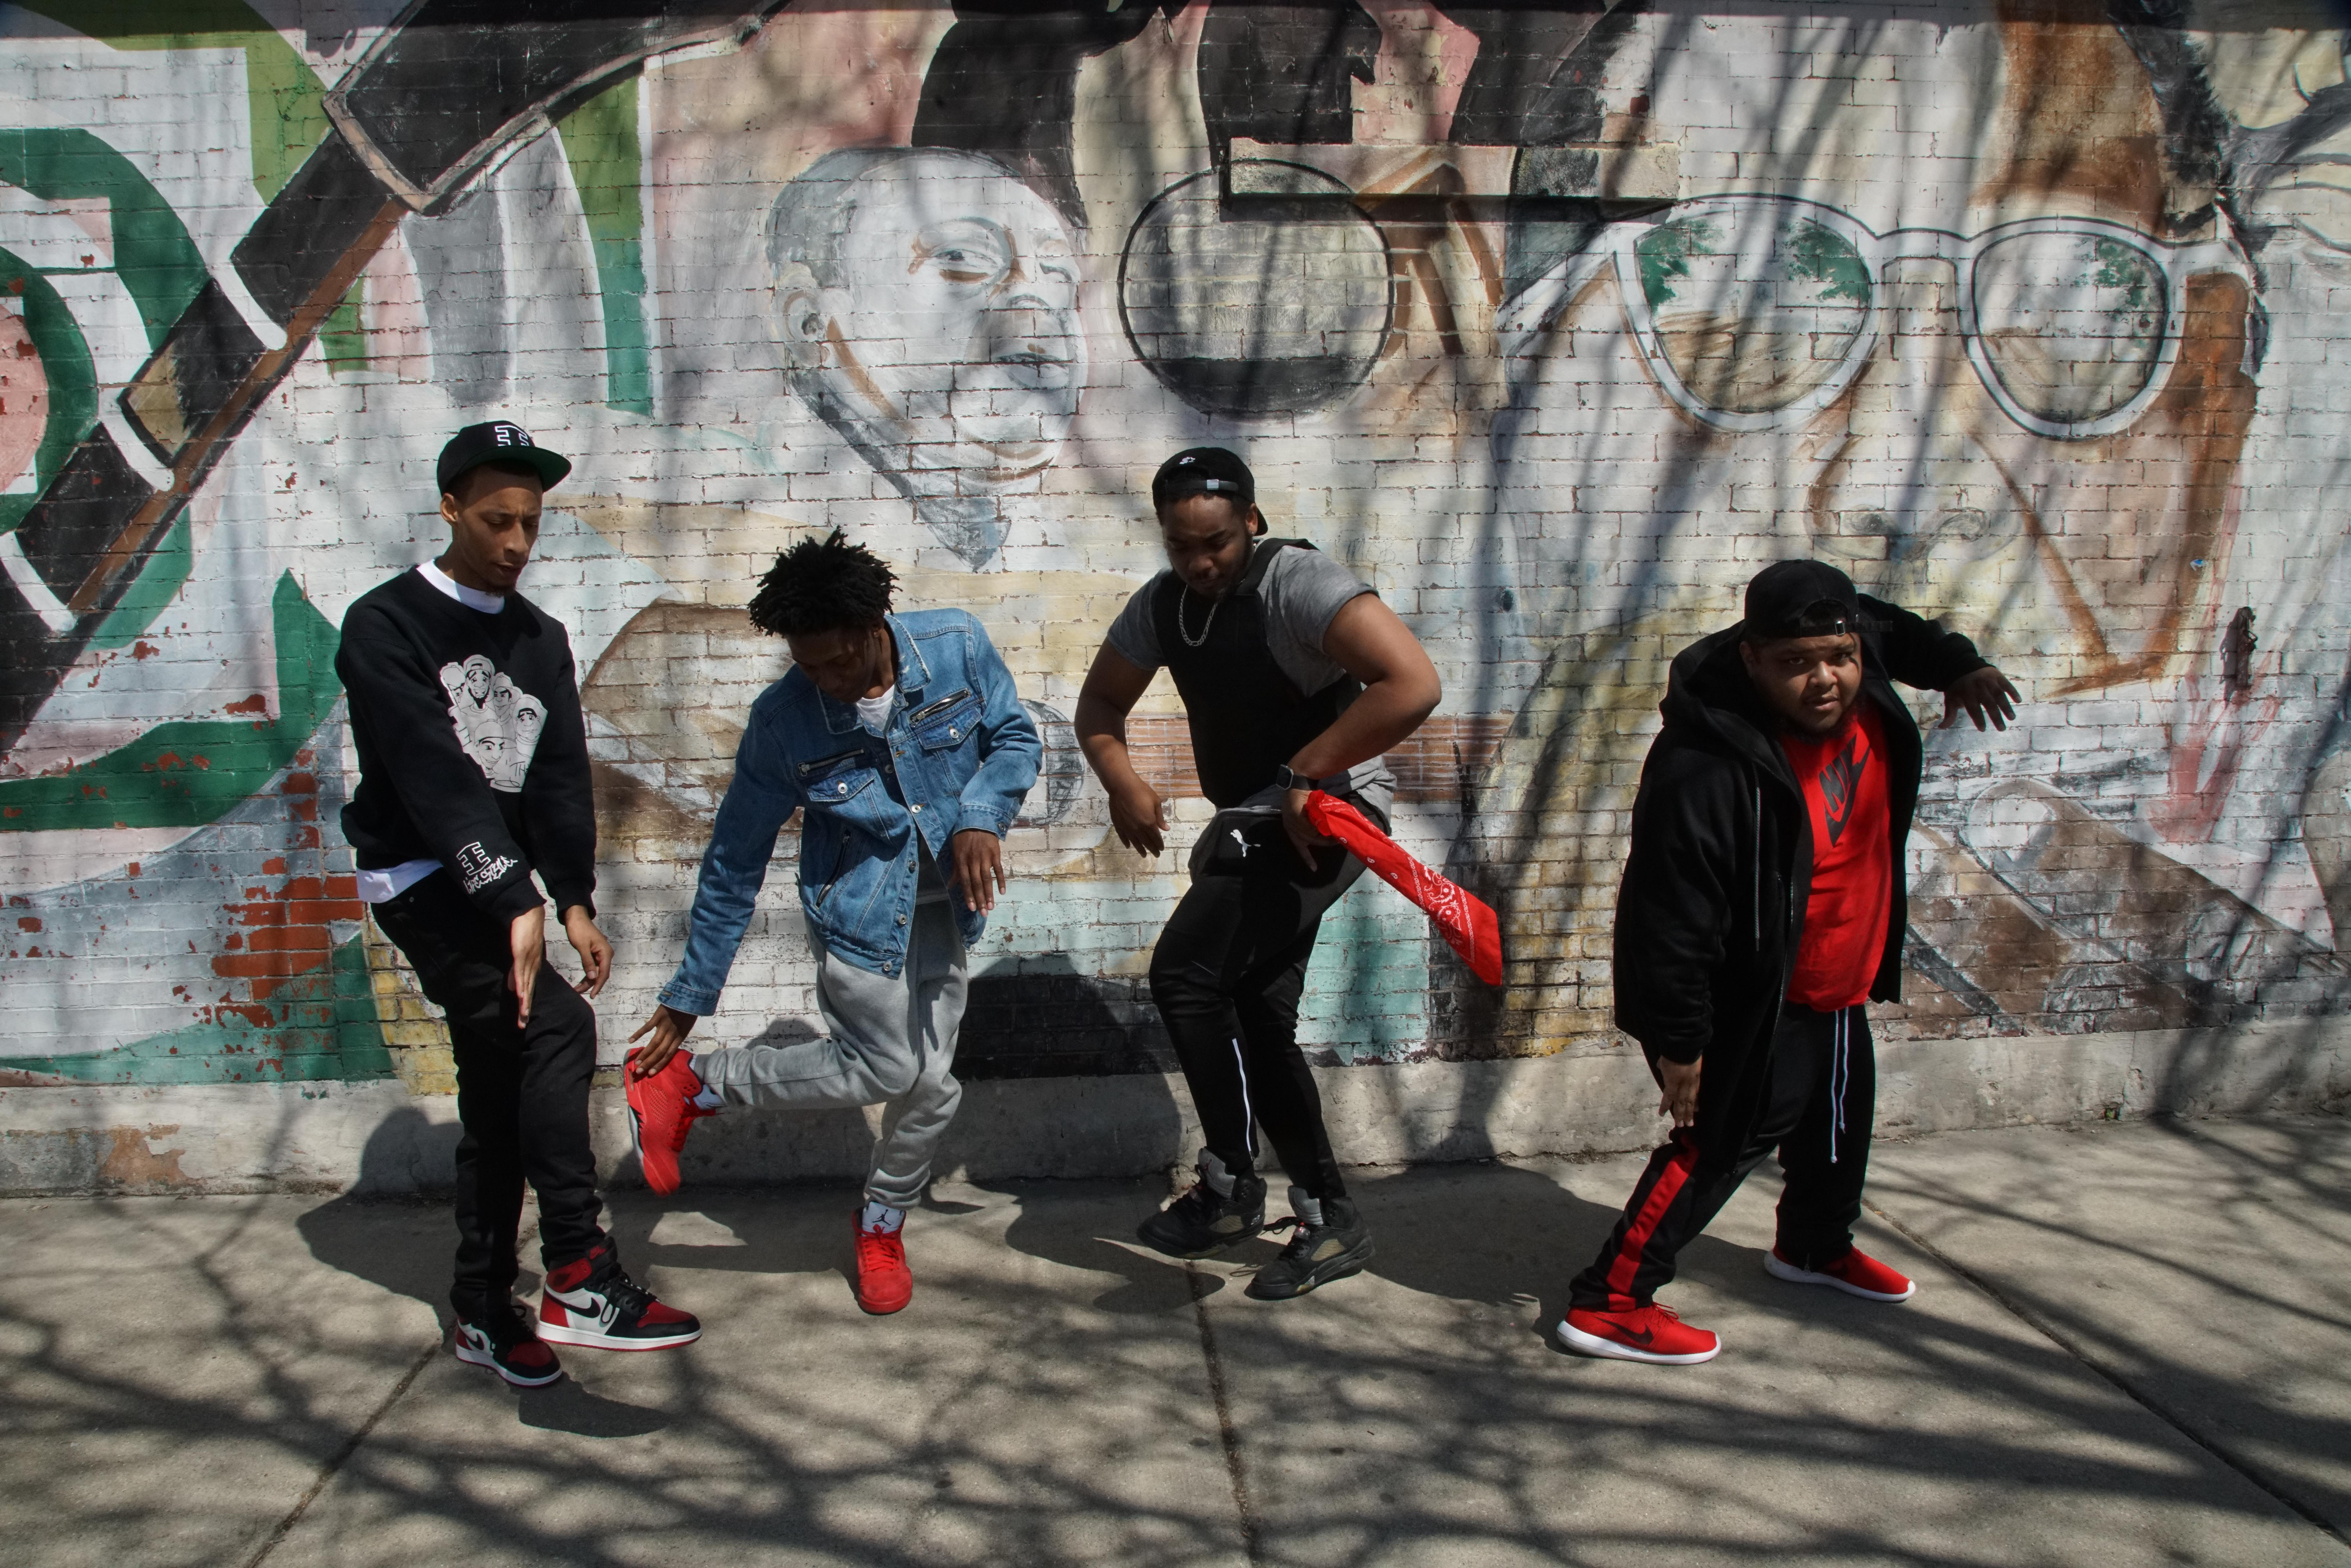 Four young men dance on a city sidewalk in front of a mural on a brick wall.